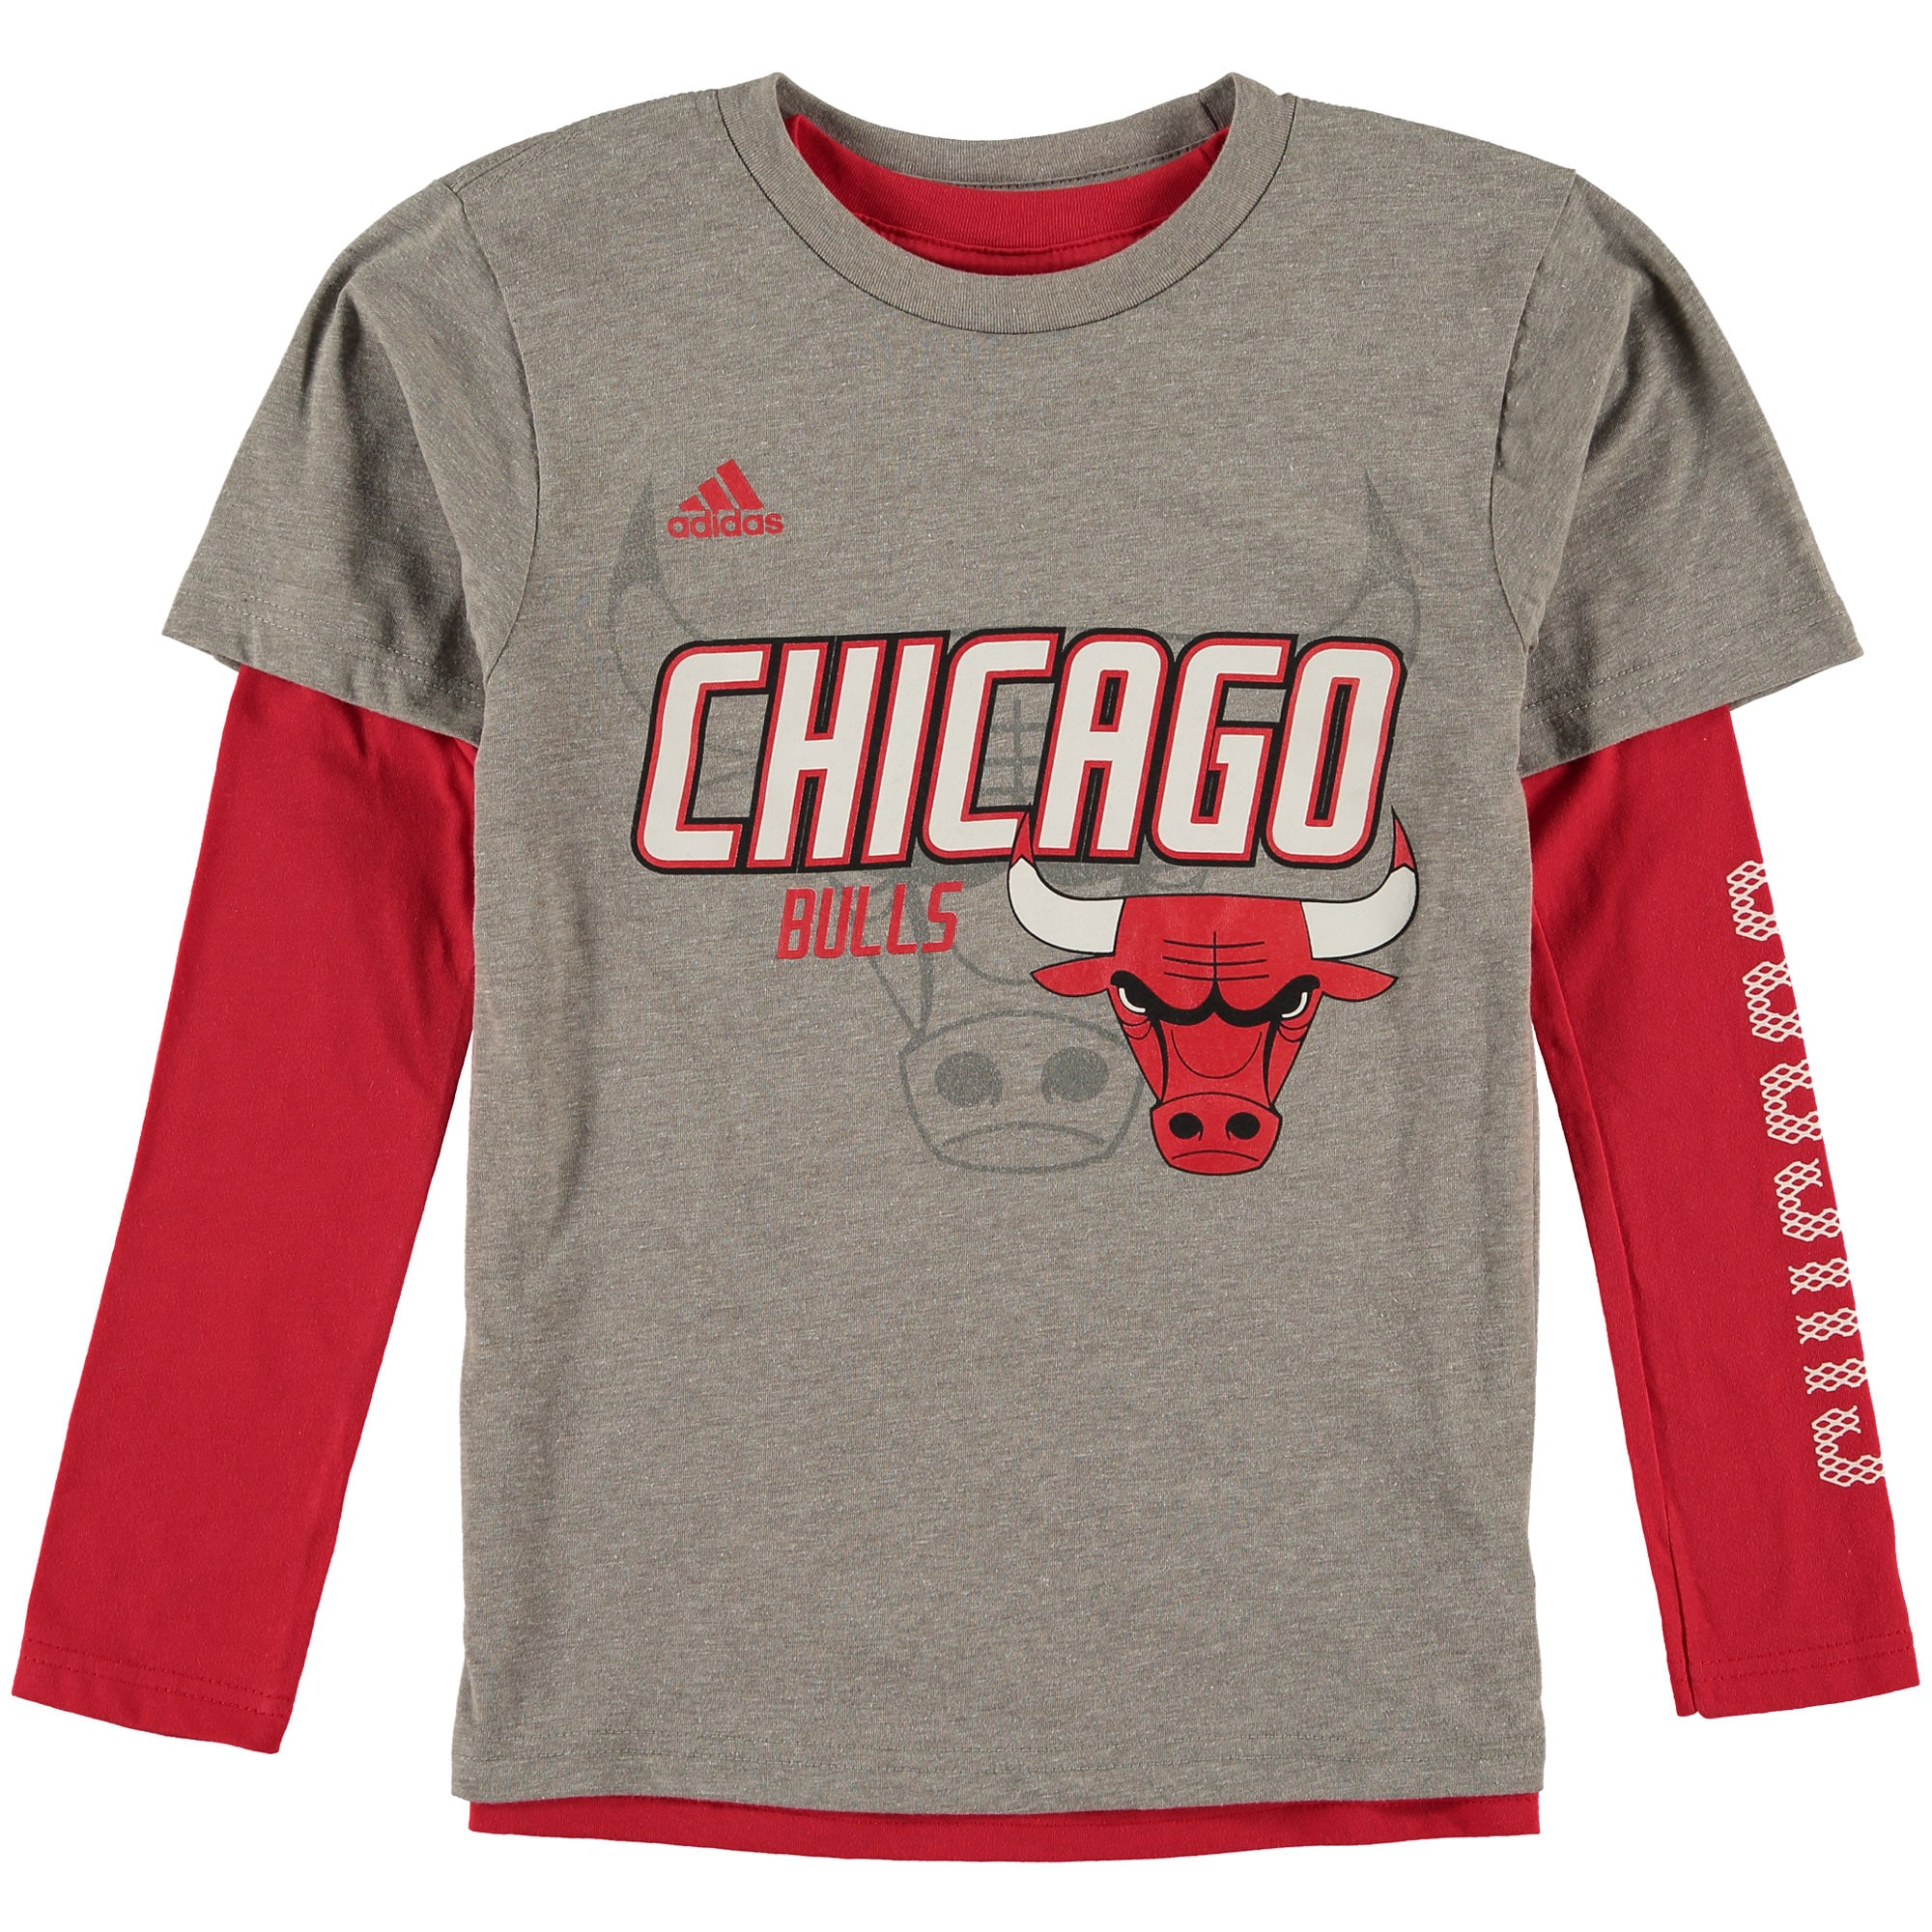 Chicago Bulls adidas Youth 3-in-1 Combo T-Shirt Set - Gray/Red